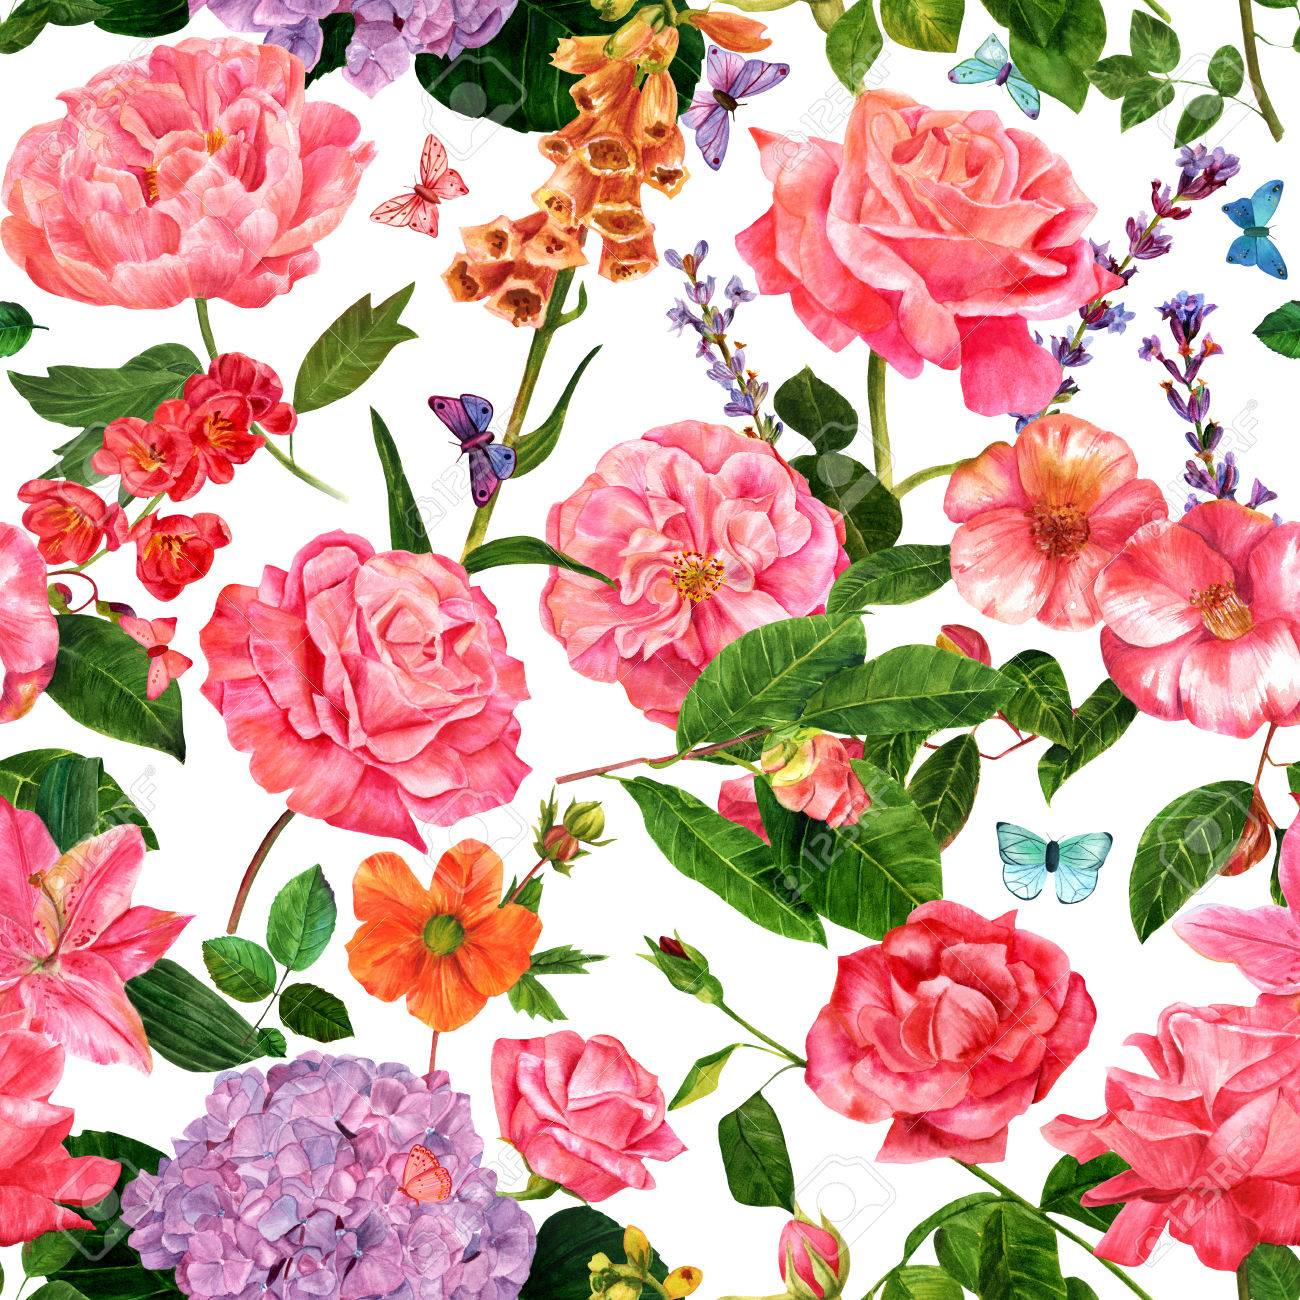 A vintage style seamless botanical pattern with hand drawn watercolor flowers - roses, camellias, and others - and butterflies, on white background - 63699782